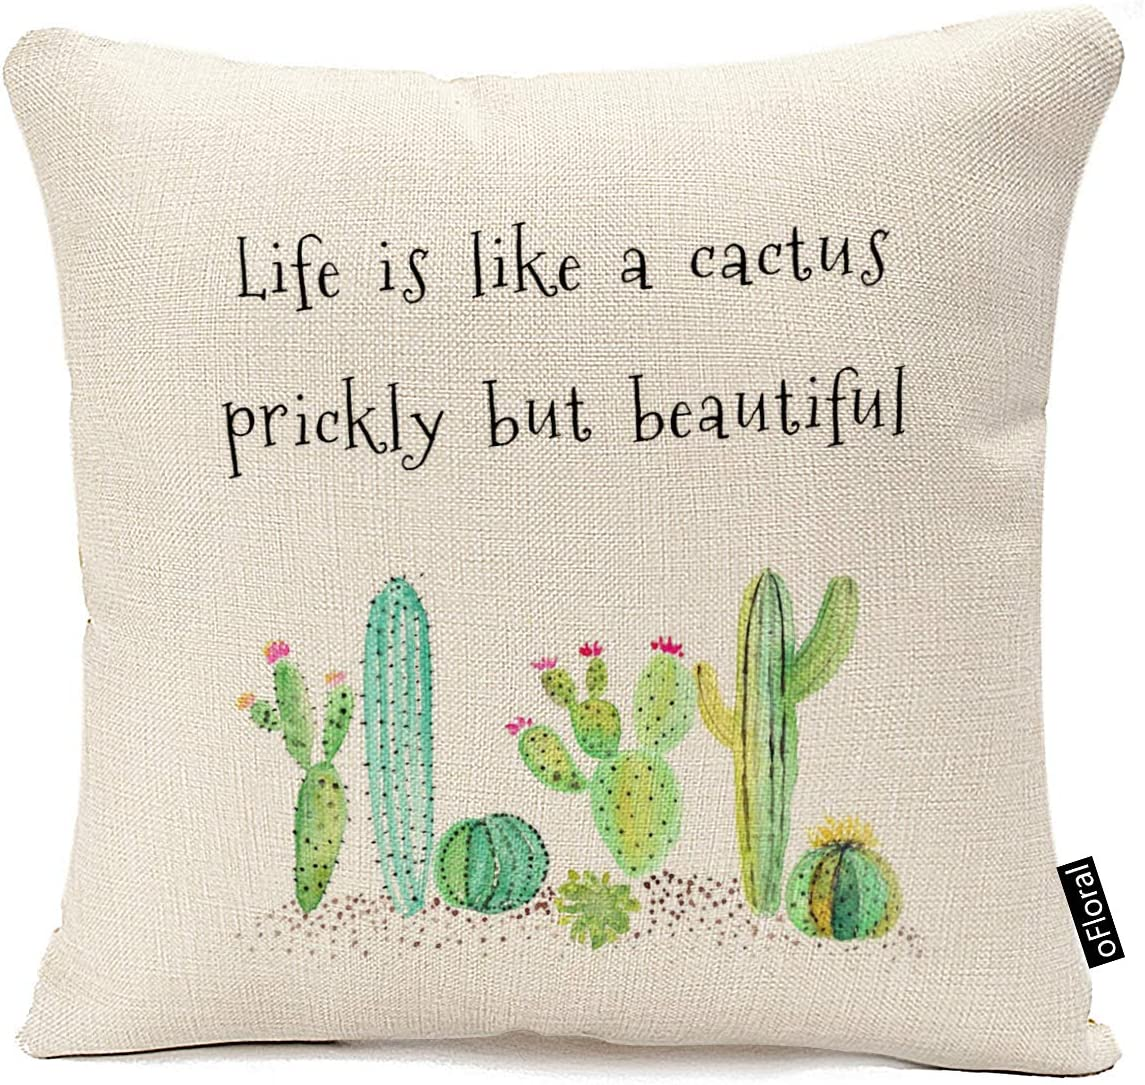 oFloral Inspirational Quote Succulents Plants Cactus Cotton Linen Home Decor Pillowcase Throw Pillow Cushion Cover 18 x 18 Inches (Life is Like A Cactus Prickly But Beautiful)